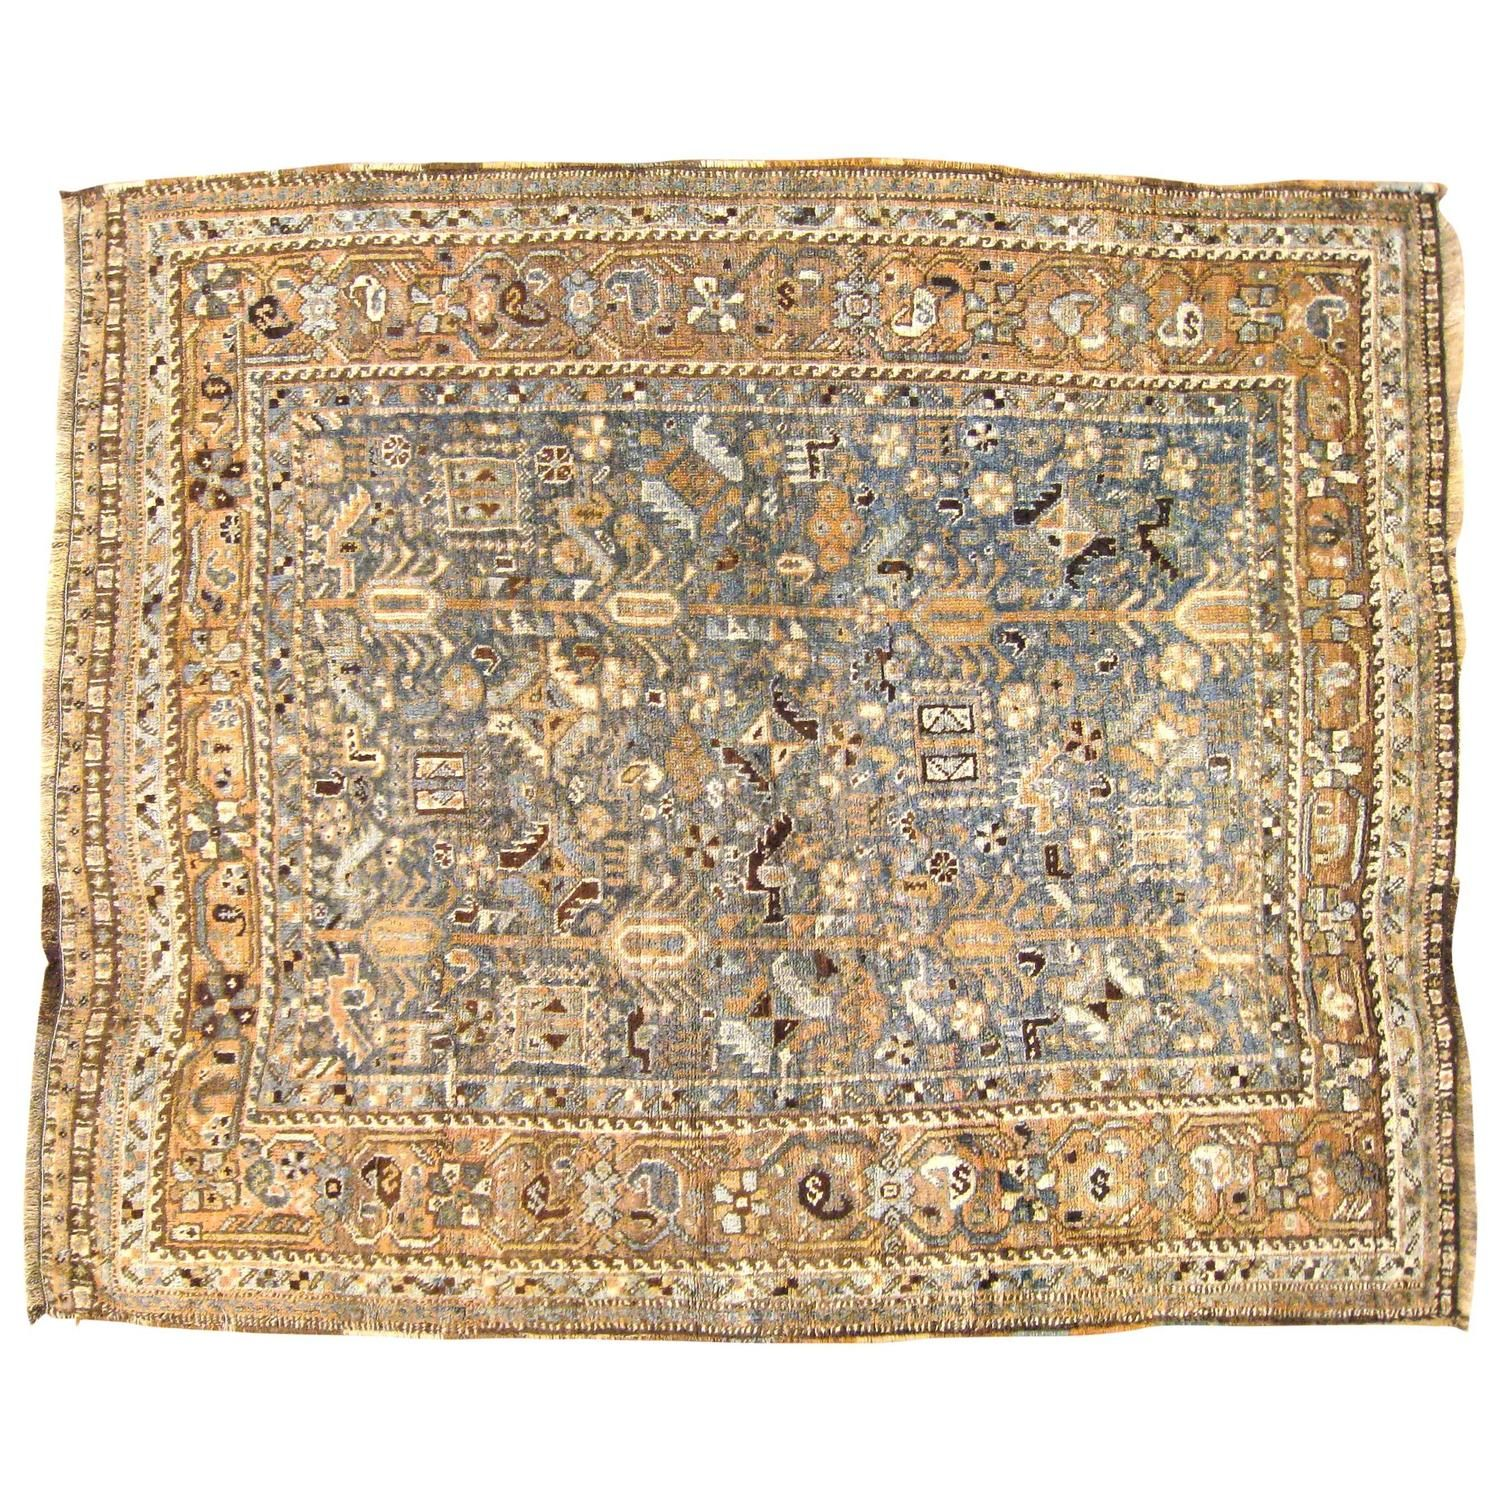 Vintage Persian Shiraz Oriental Rug In Small Square Size With Soft Earth Tones